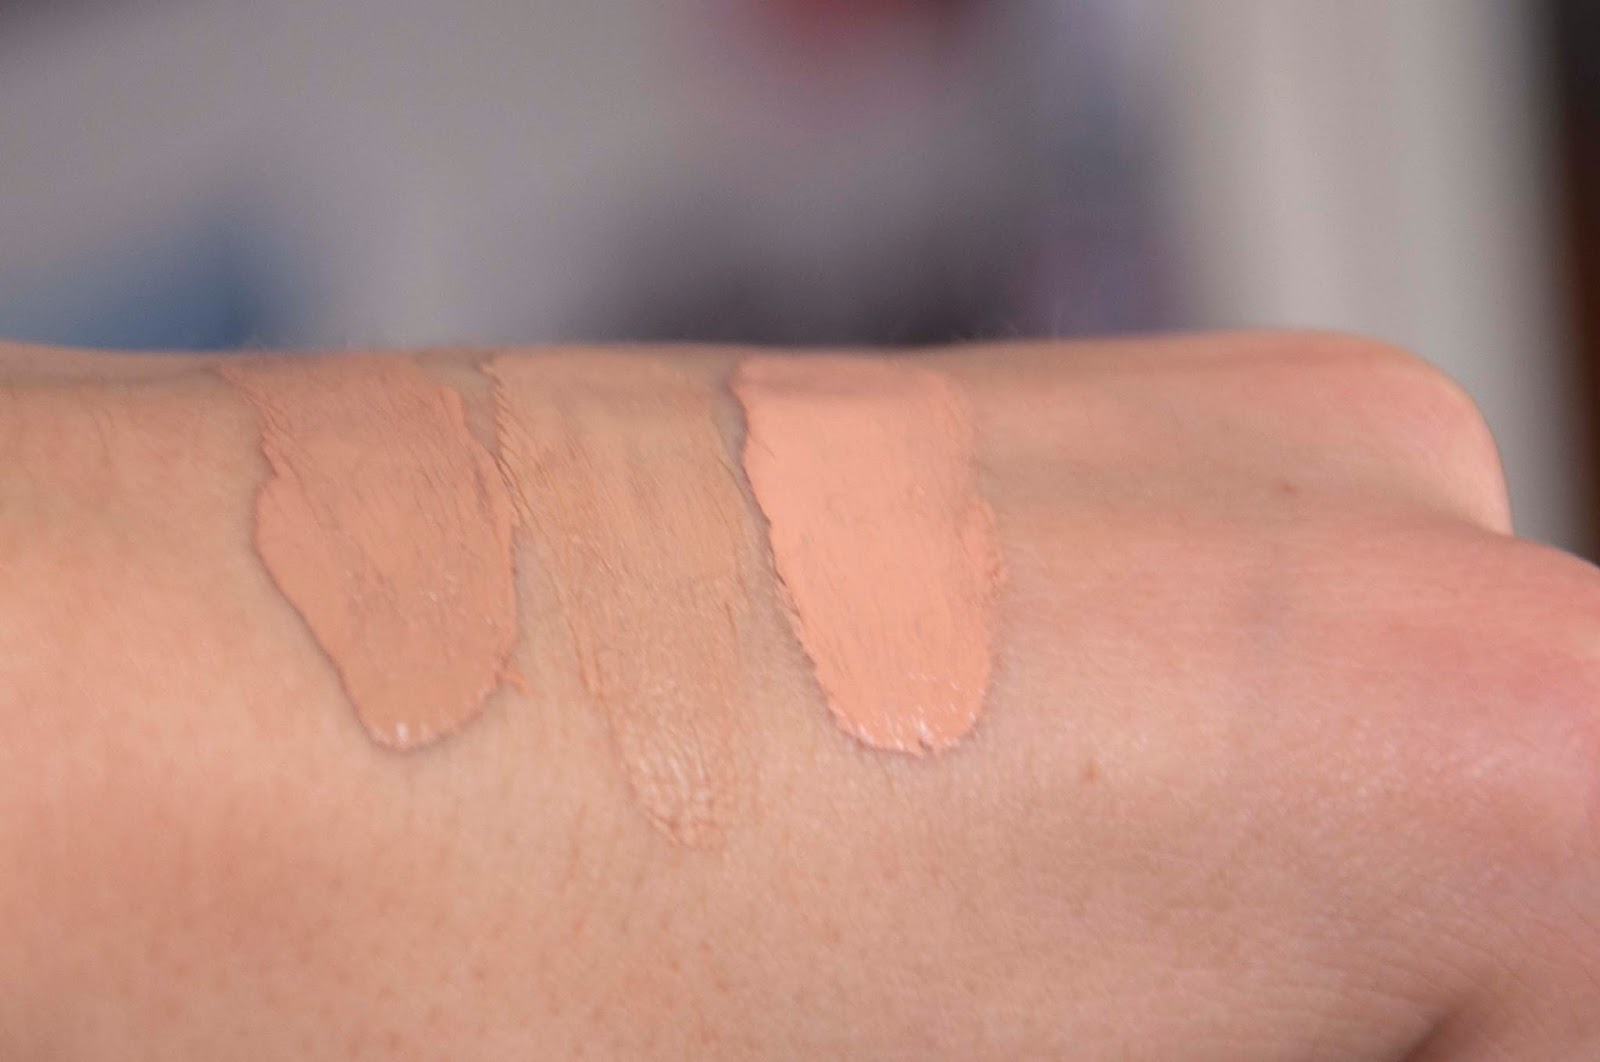 Diorskin Nude Foundation Swatches 030 031 032